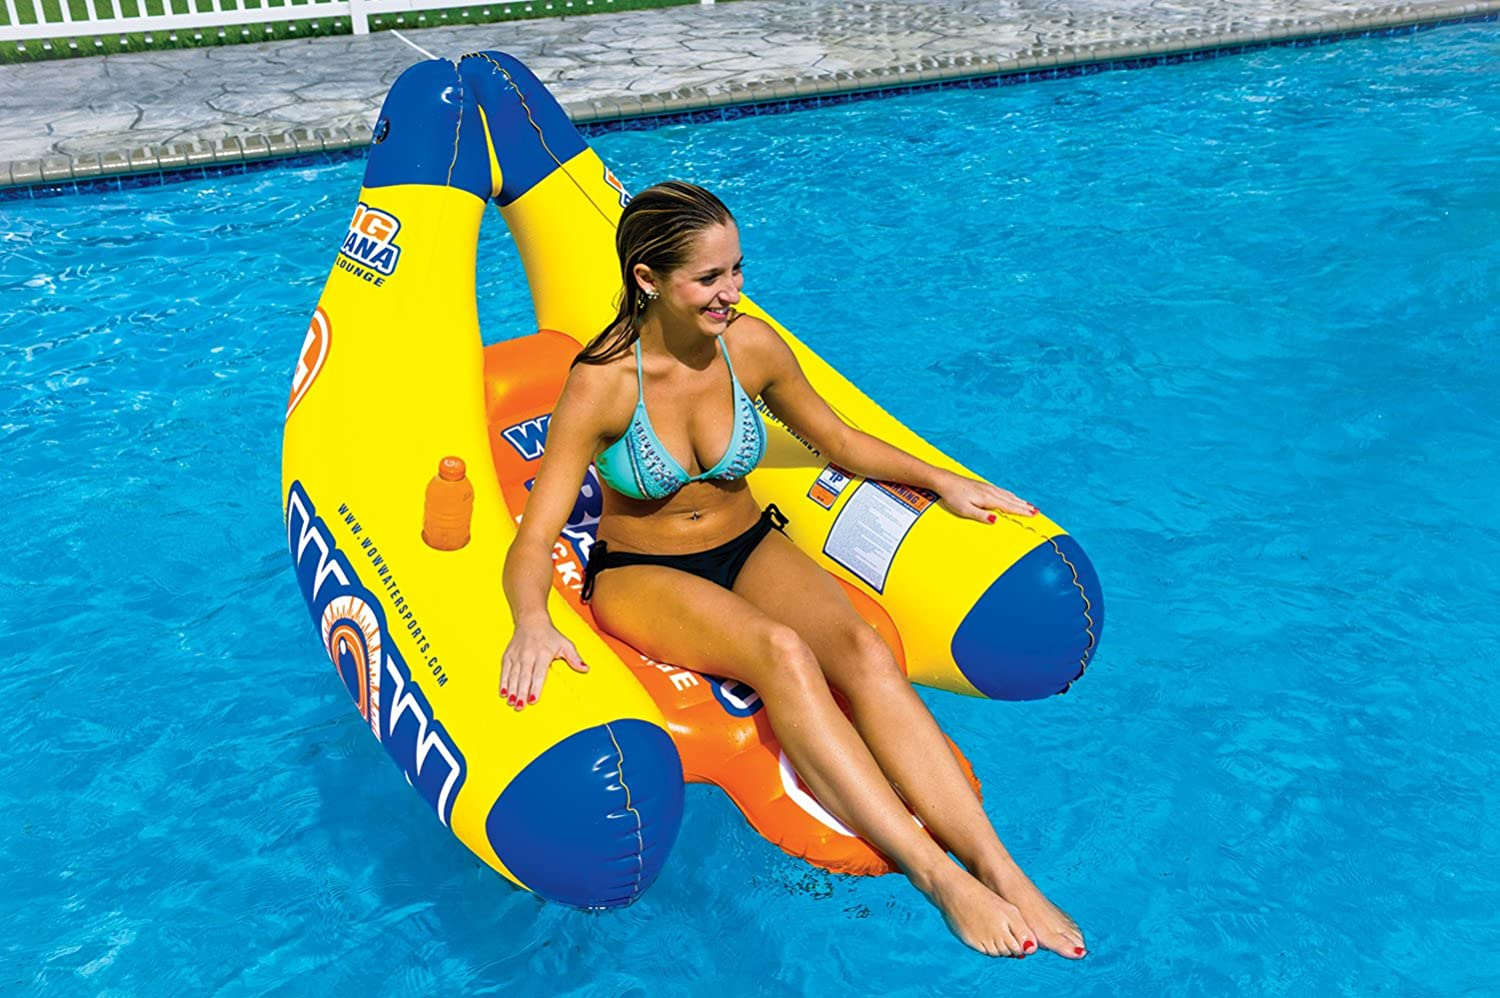 2 Cup Holders WOW Watersports Big Banana Inflatable Lounge 1 Person WOW World of Watersports 13-2020